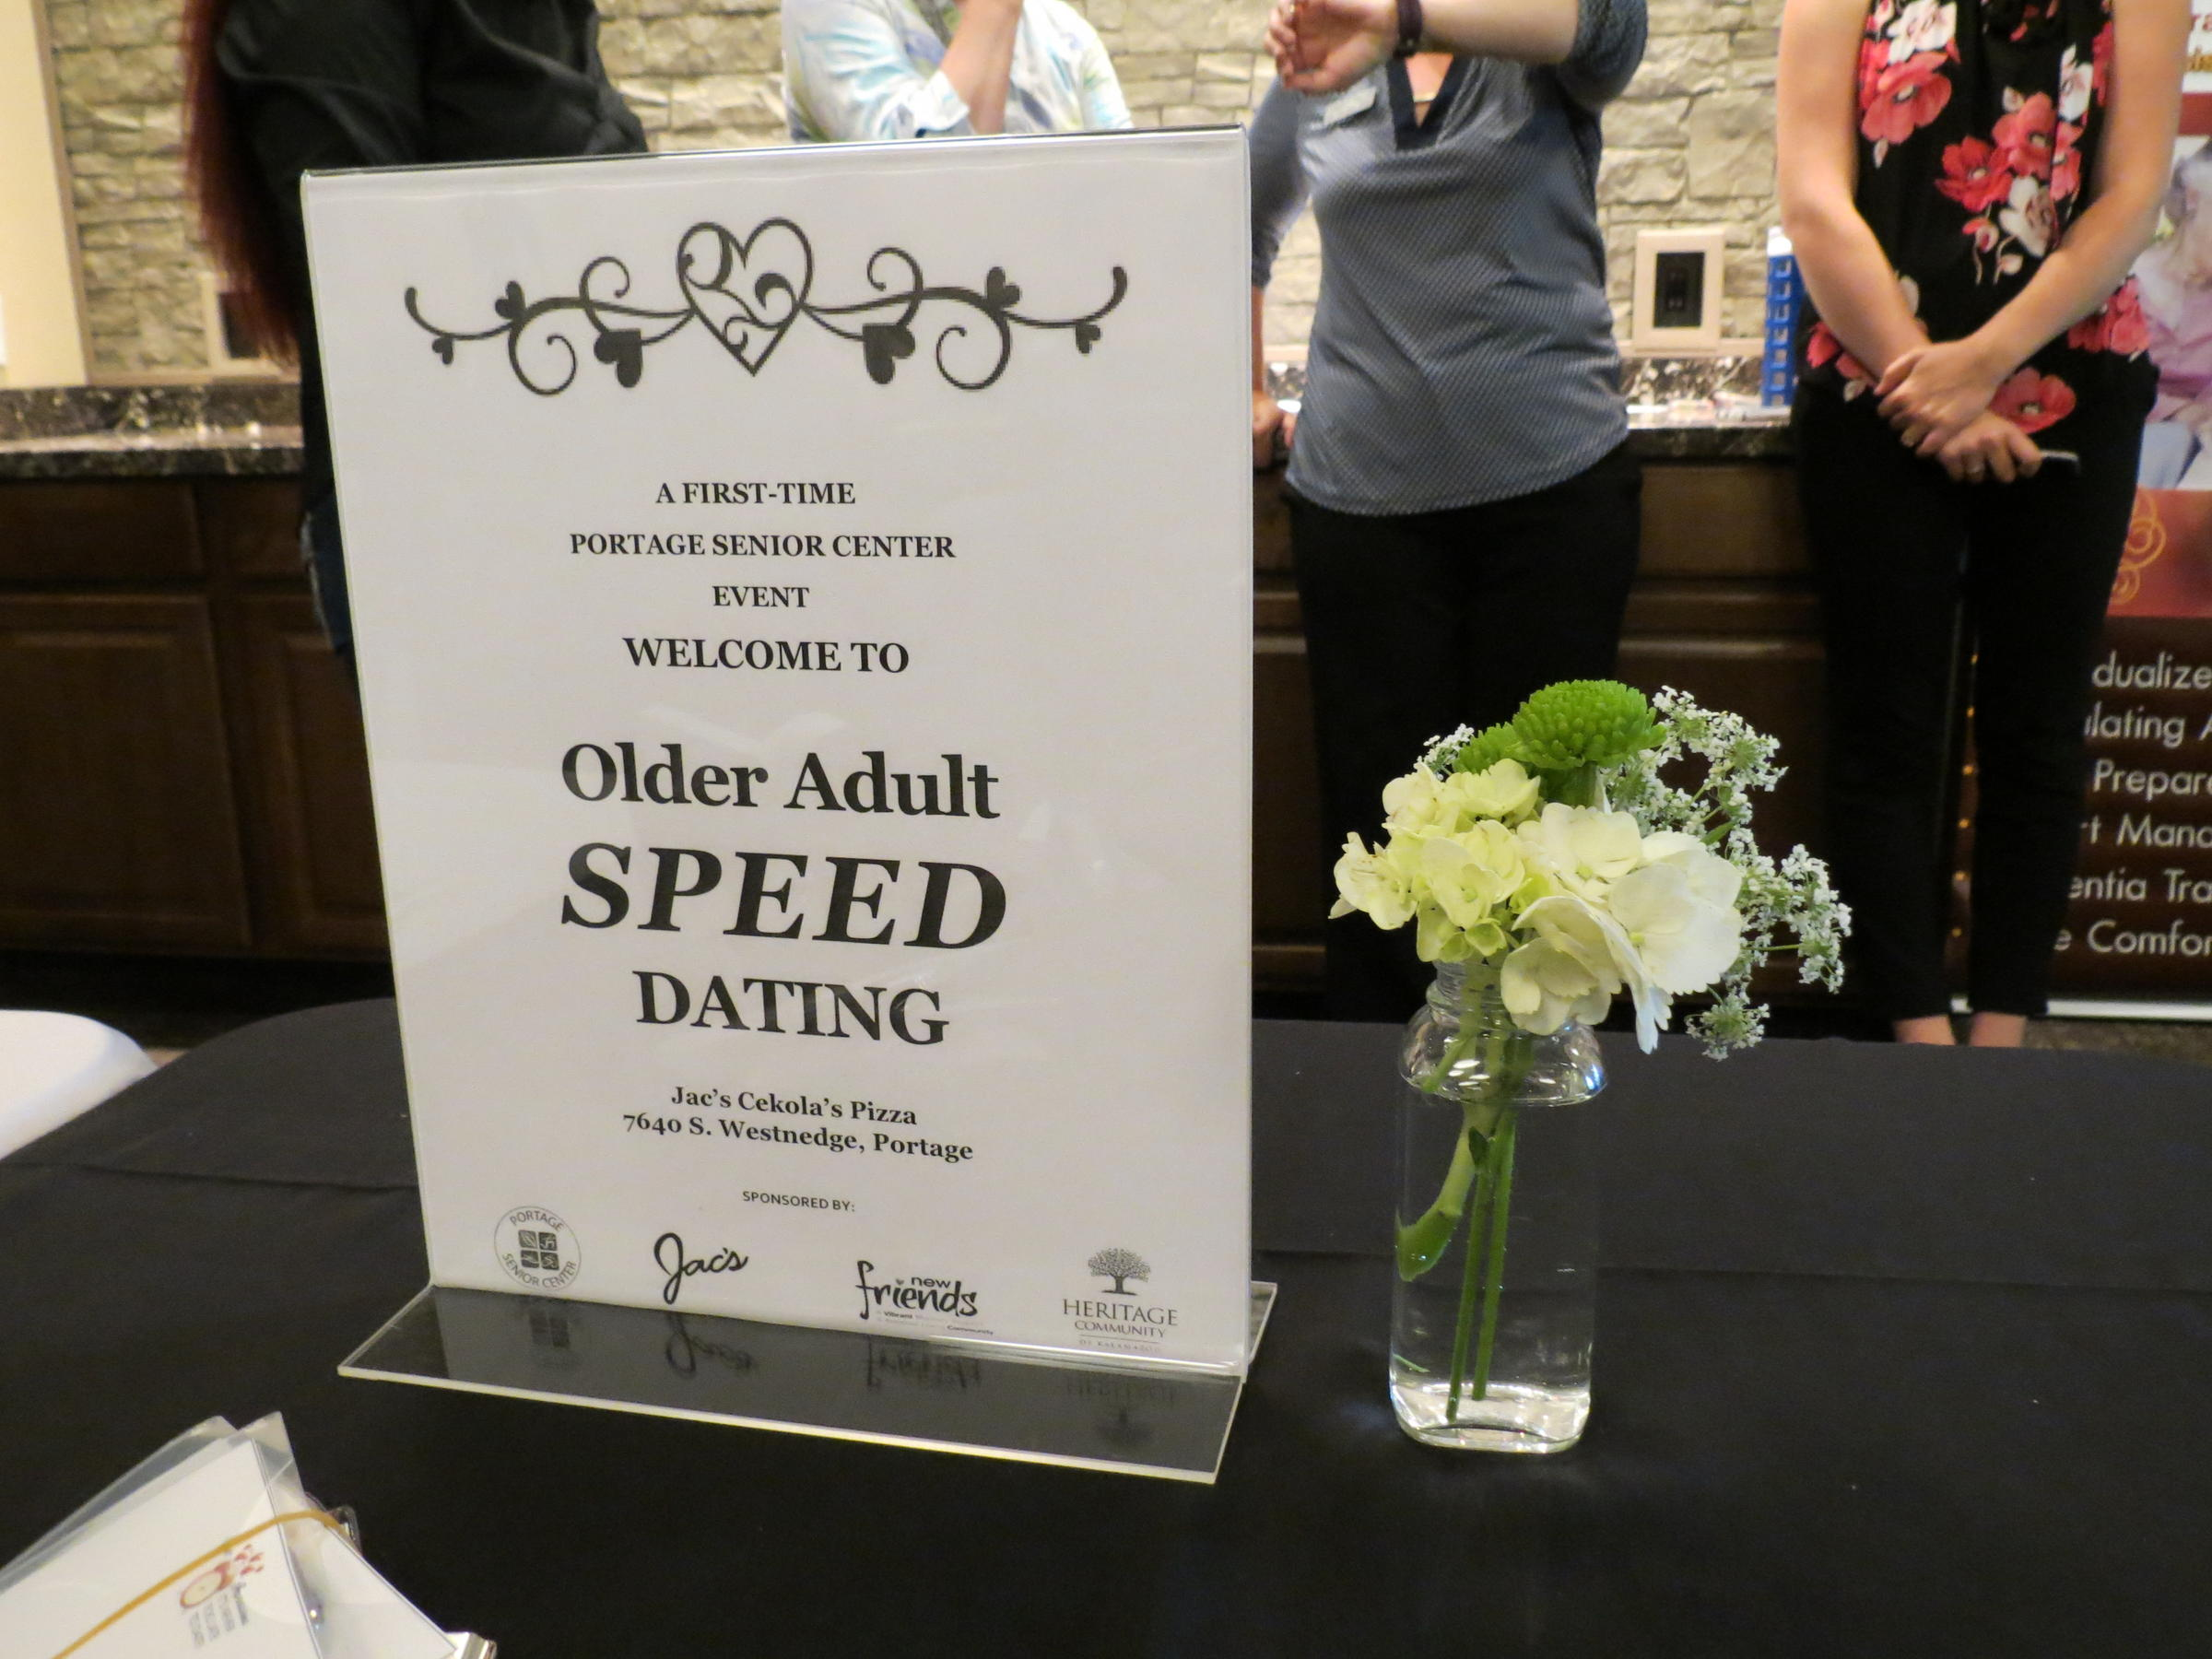 Speed dating maryland over 50